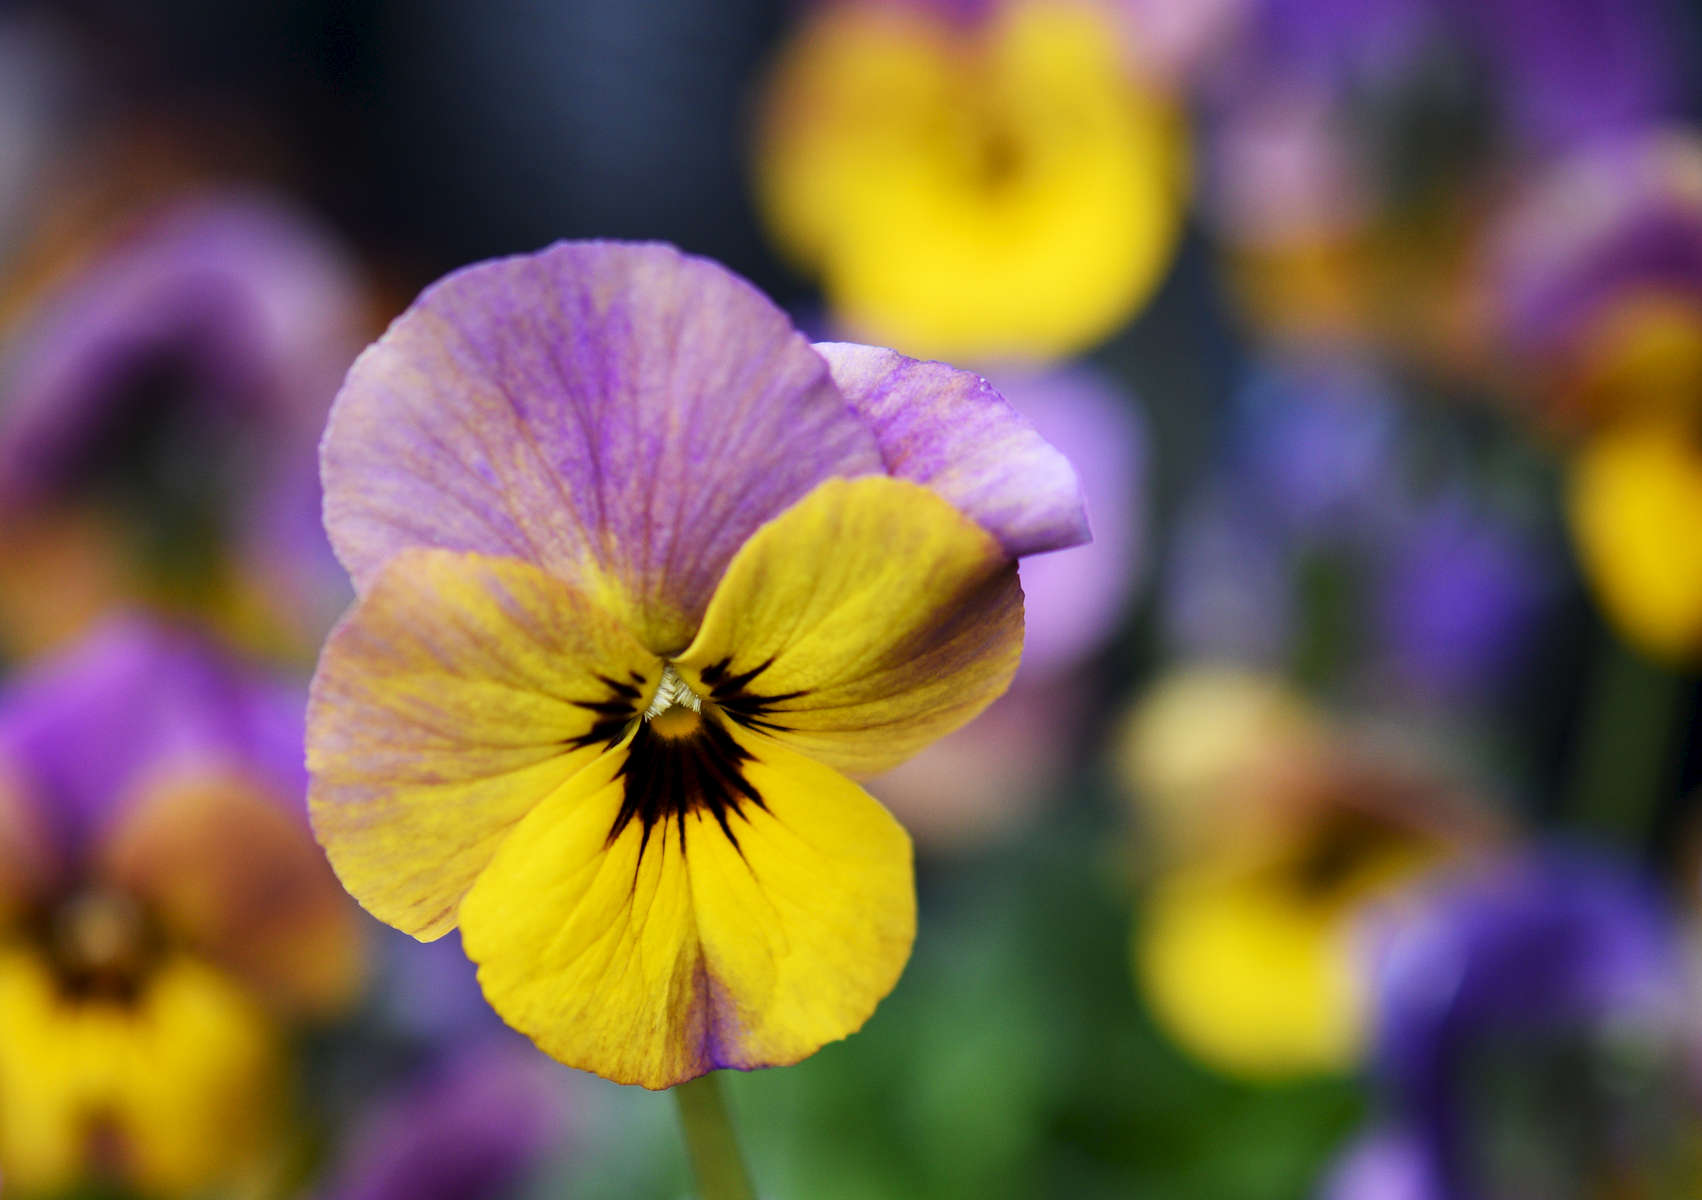 TRURO -- A colorful pansy shows off at Bayberry Gardens & Landscaping on Wednesday, April 11, 2018. Christine Hochkeppel for the Provincetown Banner